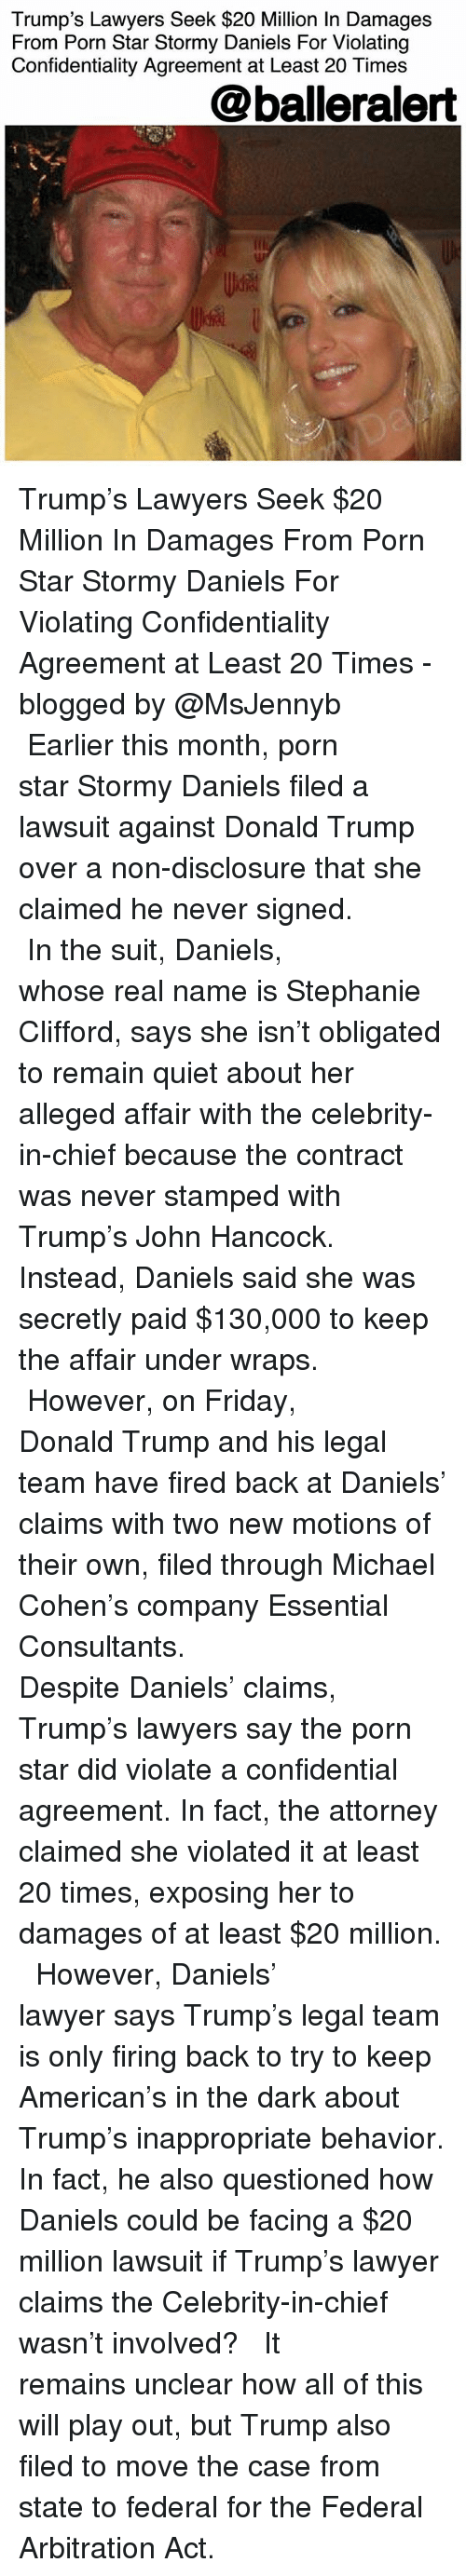 Donald Trump, Friday, and Lawyer: Trump's Lawyers Seek $20 Million In Damages  From Porn Star Stormy Daniels For Violating  Confidentiality Agreement at Least 20 Times  @balleralert Trump's Lawyers Seek $20 Million In Damages From Porn Star Stormy Daniels For Violating Confidentiality Agreement at Least 20 Times - blogged by @MsJennyb ⠀⠀⠀⠀⠀⠀⠀⠀⠀ ⠀⠀⠀⠀⠀⠀⠀⠀⠀ Earlier this month, porn star Stormy Daniels filed a lawsuit against Donald Trump over a non-disclosure that she claimed he never signed. ⠀⠀⠀⠀⠀⠀⠀⠀⠀ ⠀⠀⠀⠀⠀⠀⠀⠀⠀ In the suit, Daniels, whose real name is Stephanie Clifford, says she isn't obligated to remain quiet about her alleged affair with the celebrity-in-chief because the contract was never stamped with Trump's John Hancock. Instead, Daniels said she was secretly paid $130,000 to keep the affair under wraps. ⠀⠀⠀⠀⠀⠀⠀⠀⠀ ⠀⠀⠀⠀⠀⠀⠀⠀⠀ However, on Friday, Donald Trump and his legal team have fired back at Daniels' claims with two new motions of their own, filed through Michael Cohen's company Essential Consultants. ⠀⠀⠀⠀⠀⠀⠀⠀⠀ ⠀⠀⠀⠀⠀⠀⠀⠀⠀ Despite Daniels' claims, Trump's lawyers say the porn star did violate a confidential agreement. In fact, the attorney claimed she violated it at least 20 times, exposing her to damages of at least $20 million. ⠀⠀⠀⠀⠀⠀⠀⠀⠀ ⠀⠀⠀⠀⠀⠀⠀⠀⠀ However, Daniels' lawyer says Trump's legal team is only firing back to try to keep American's in the dark about Trump's inappropriate behavior. In fact, he also questioned how Daniels could be facing a $20 million lawsuit if Trump's lawyer claims the Celebrity-in-chief wasn't involved? ⠀⠀⠀⠀⠀⠀⠀⠀⠀ ⠀⠀⠀⠀⠀⠀⠀⠀⠀ It remains unclear how all of this will play out, but Trump also filed to move the case from state to federal for the Federal Arbitration Act.